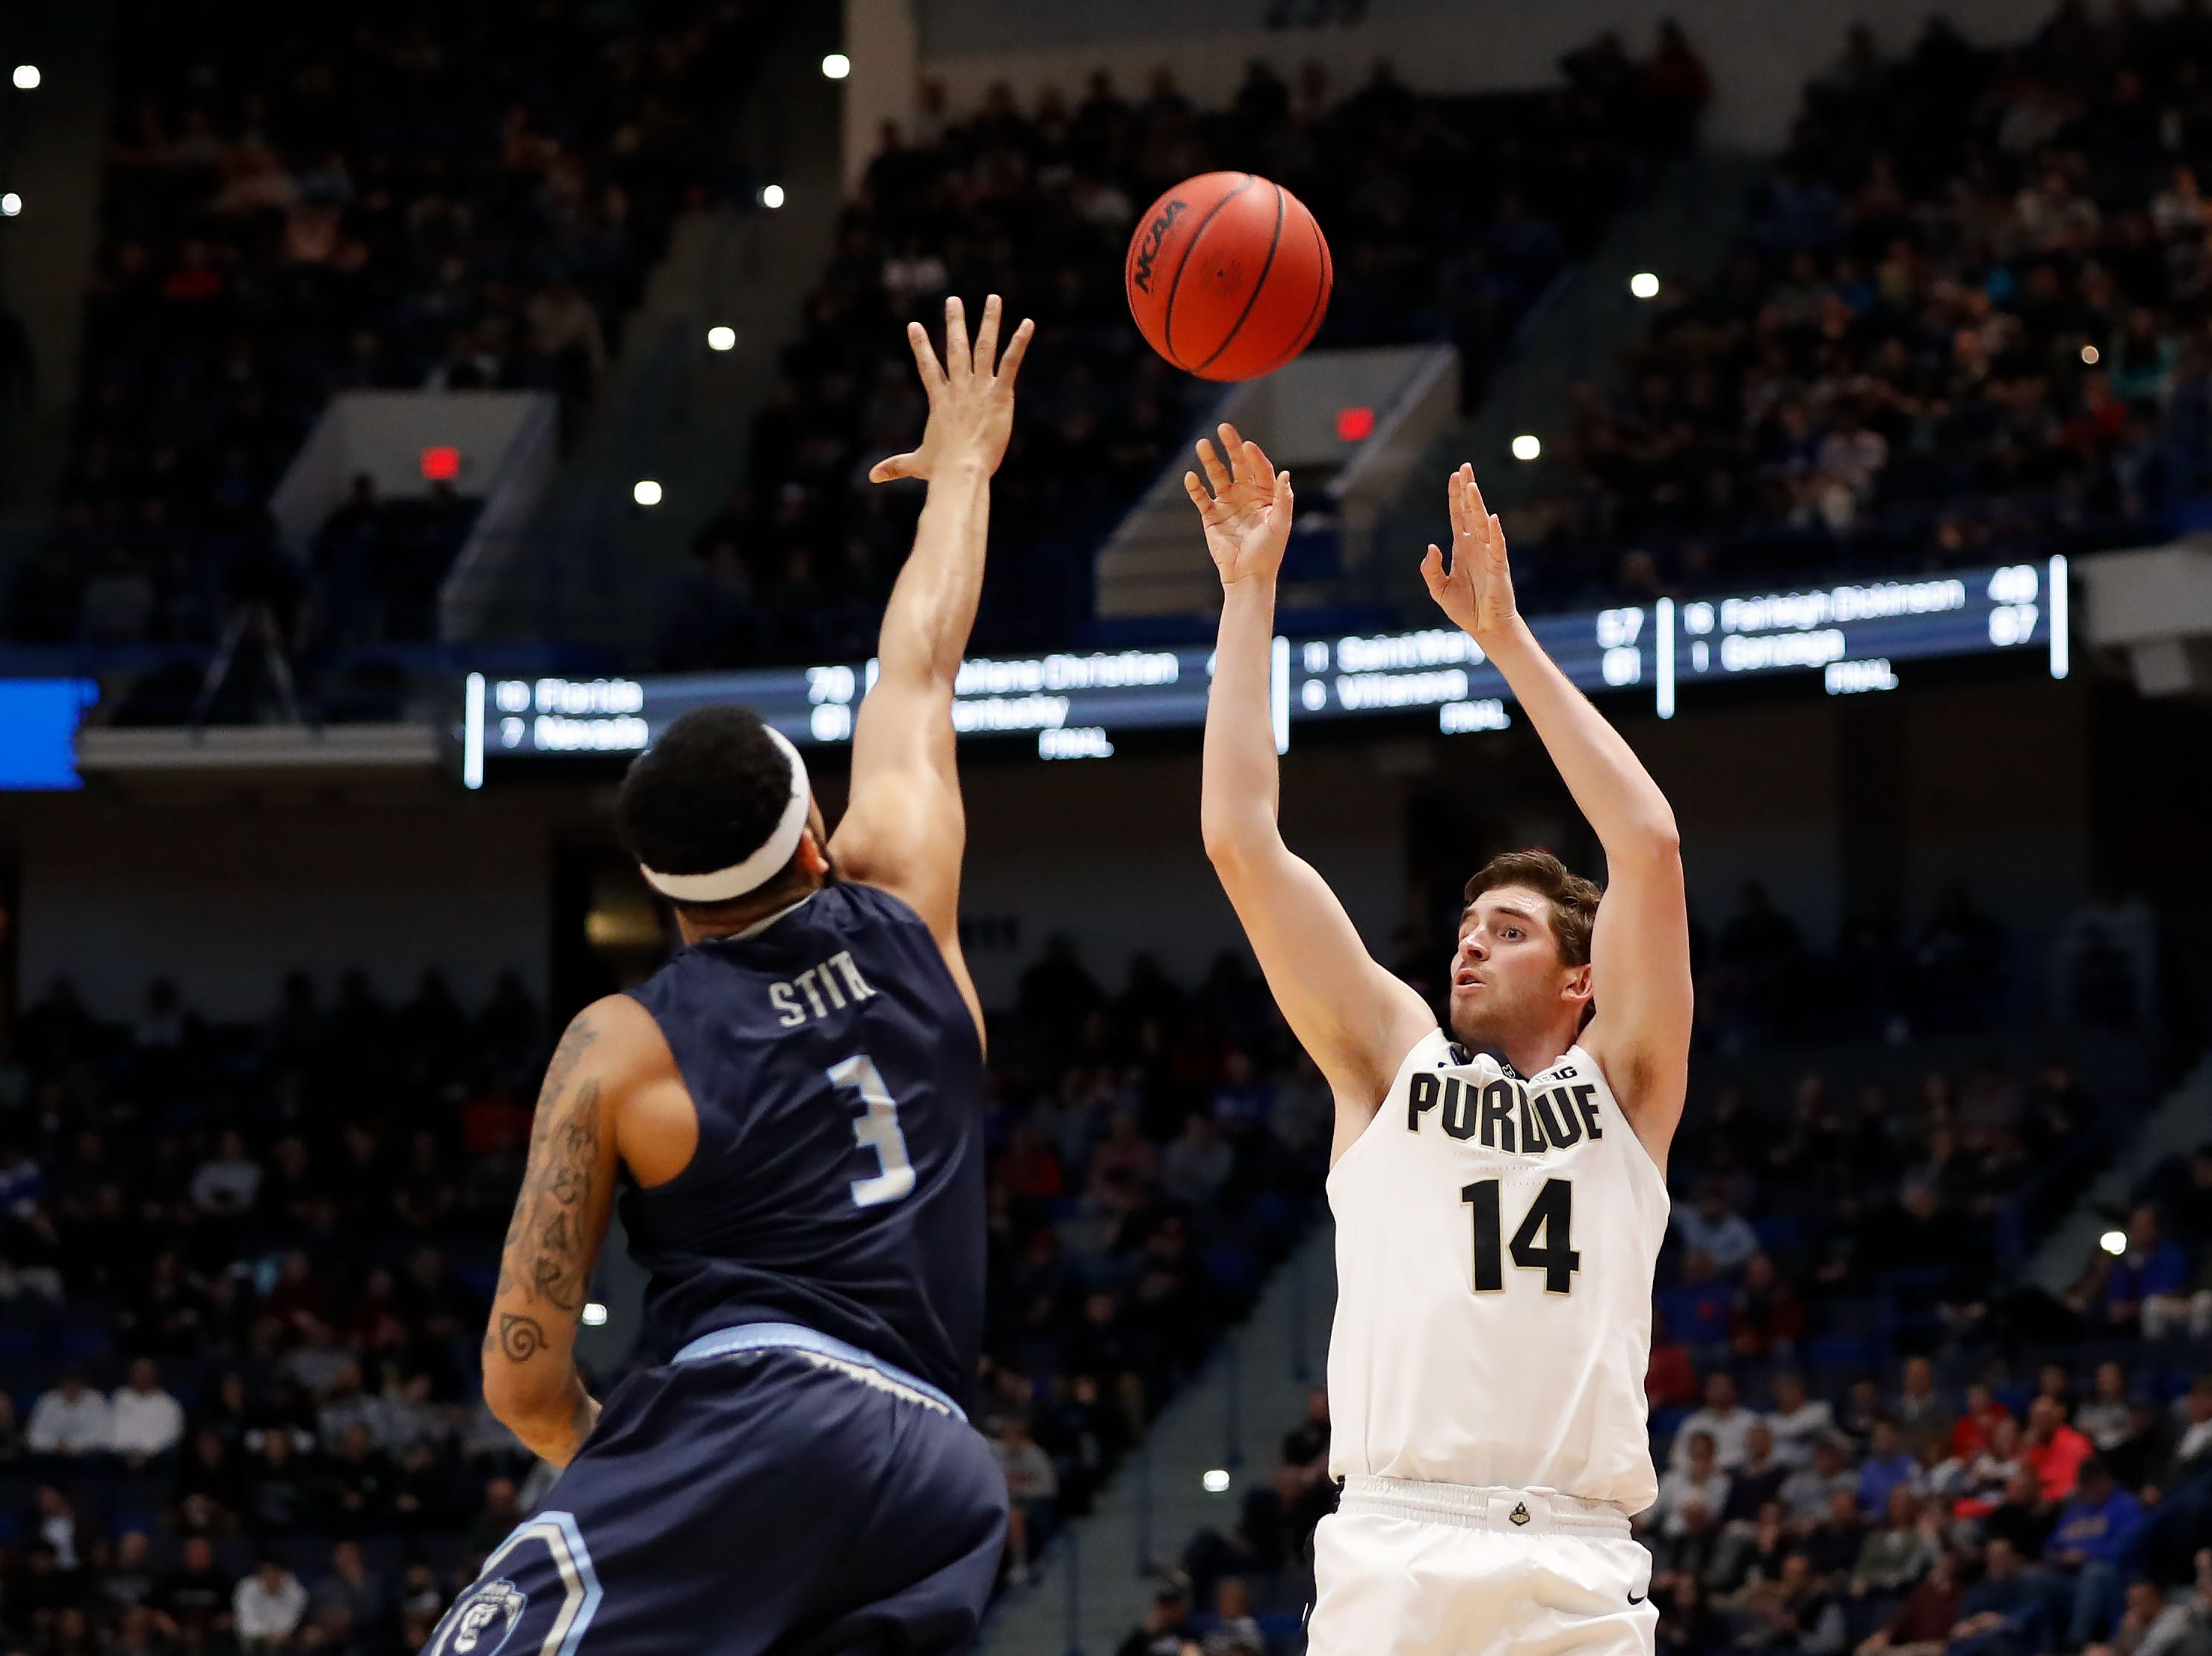 Purdue Boilermakers guard Ryan Cline (14) attempts a shot over Old Dominion Monarchs guard B.J. Stith (3) during the first half of a game in the first round of the 2019 NCAA Tournament at XL Center.